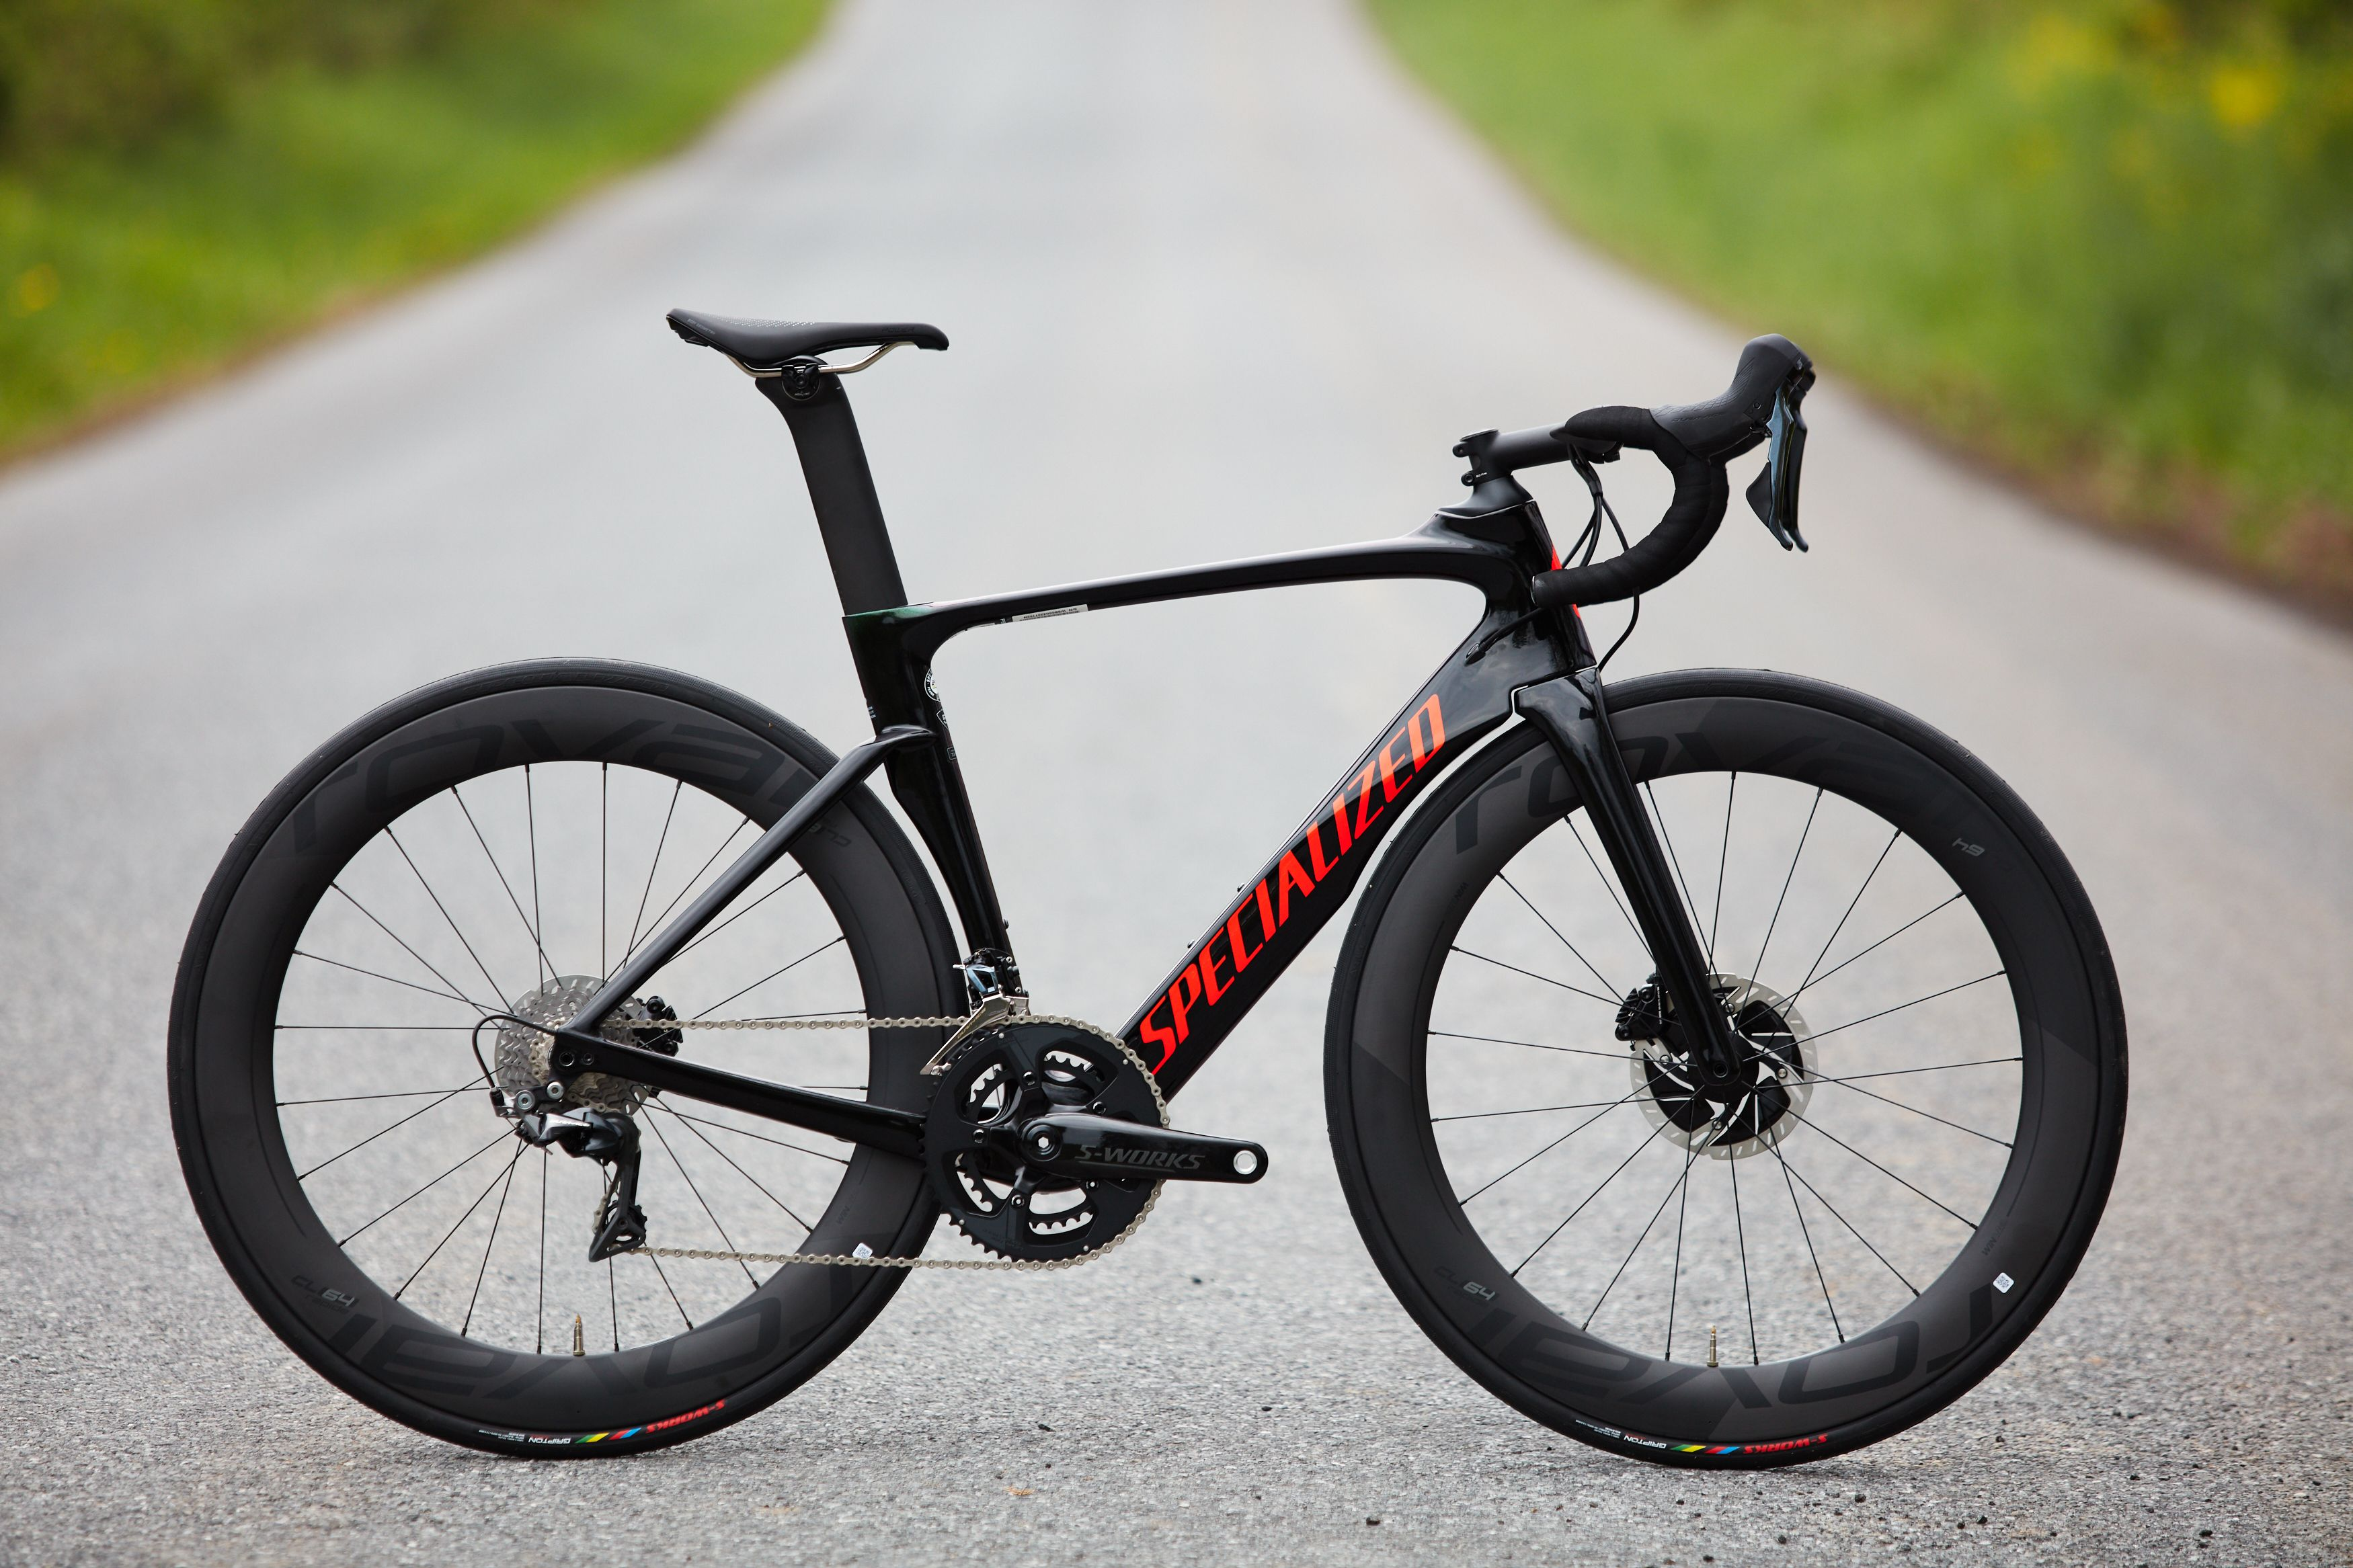 688c2edf164 Specialized Venge Pro Disc Review - An Aero Road Bike We Love